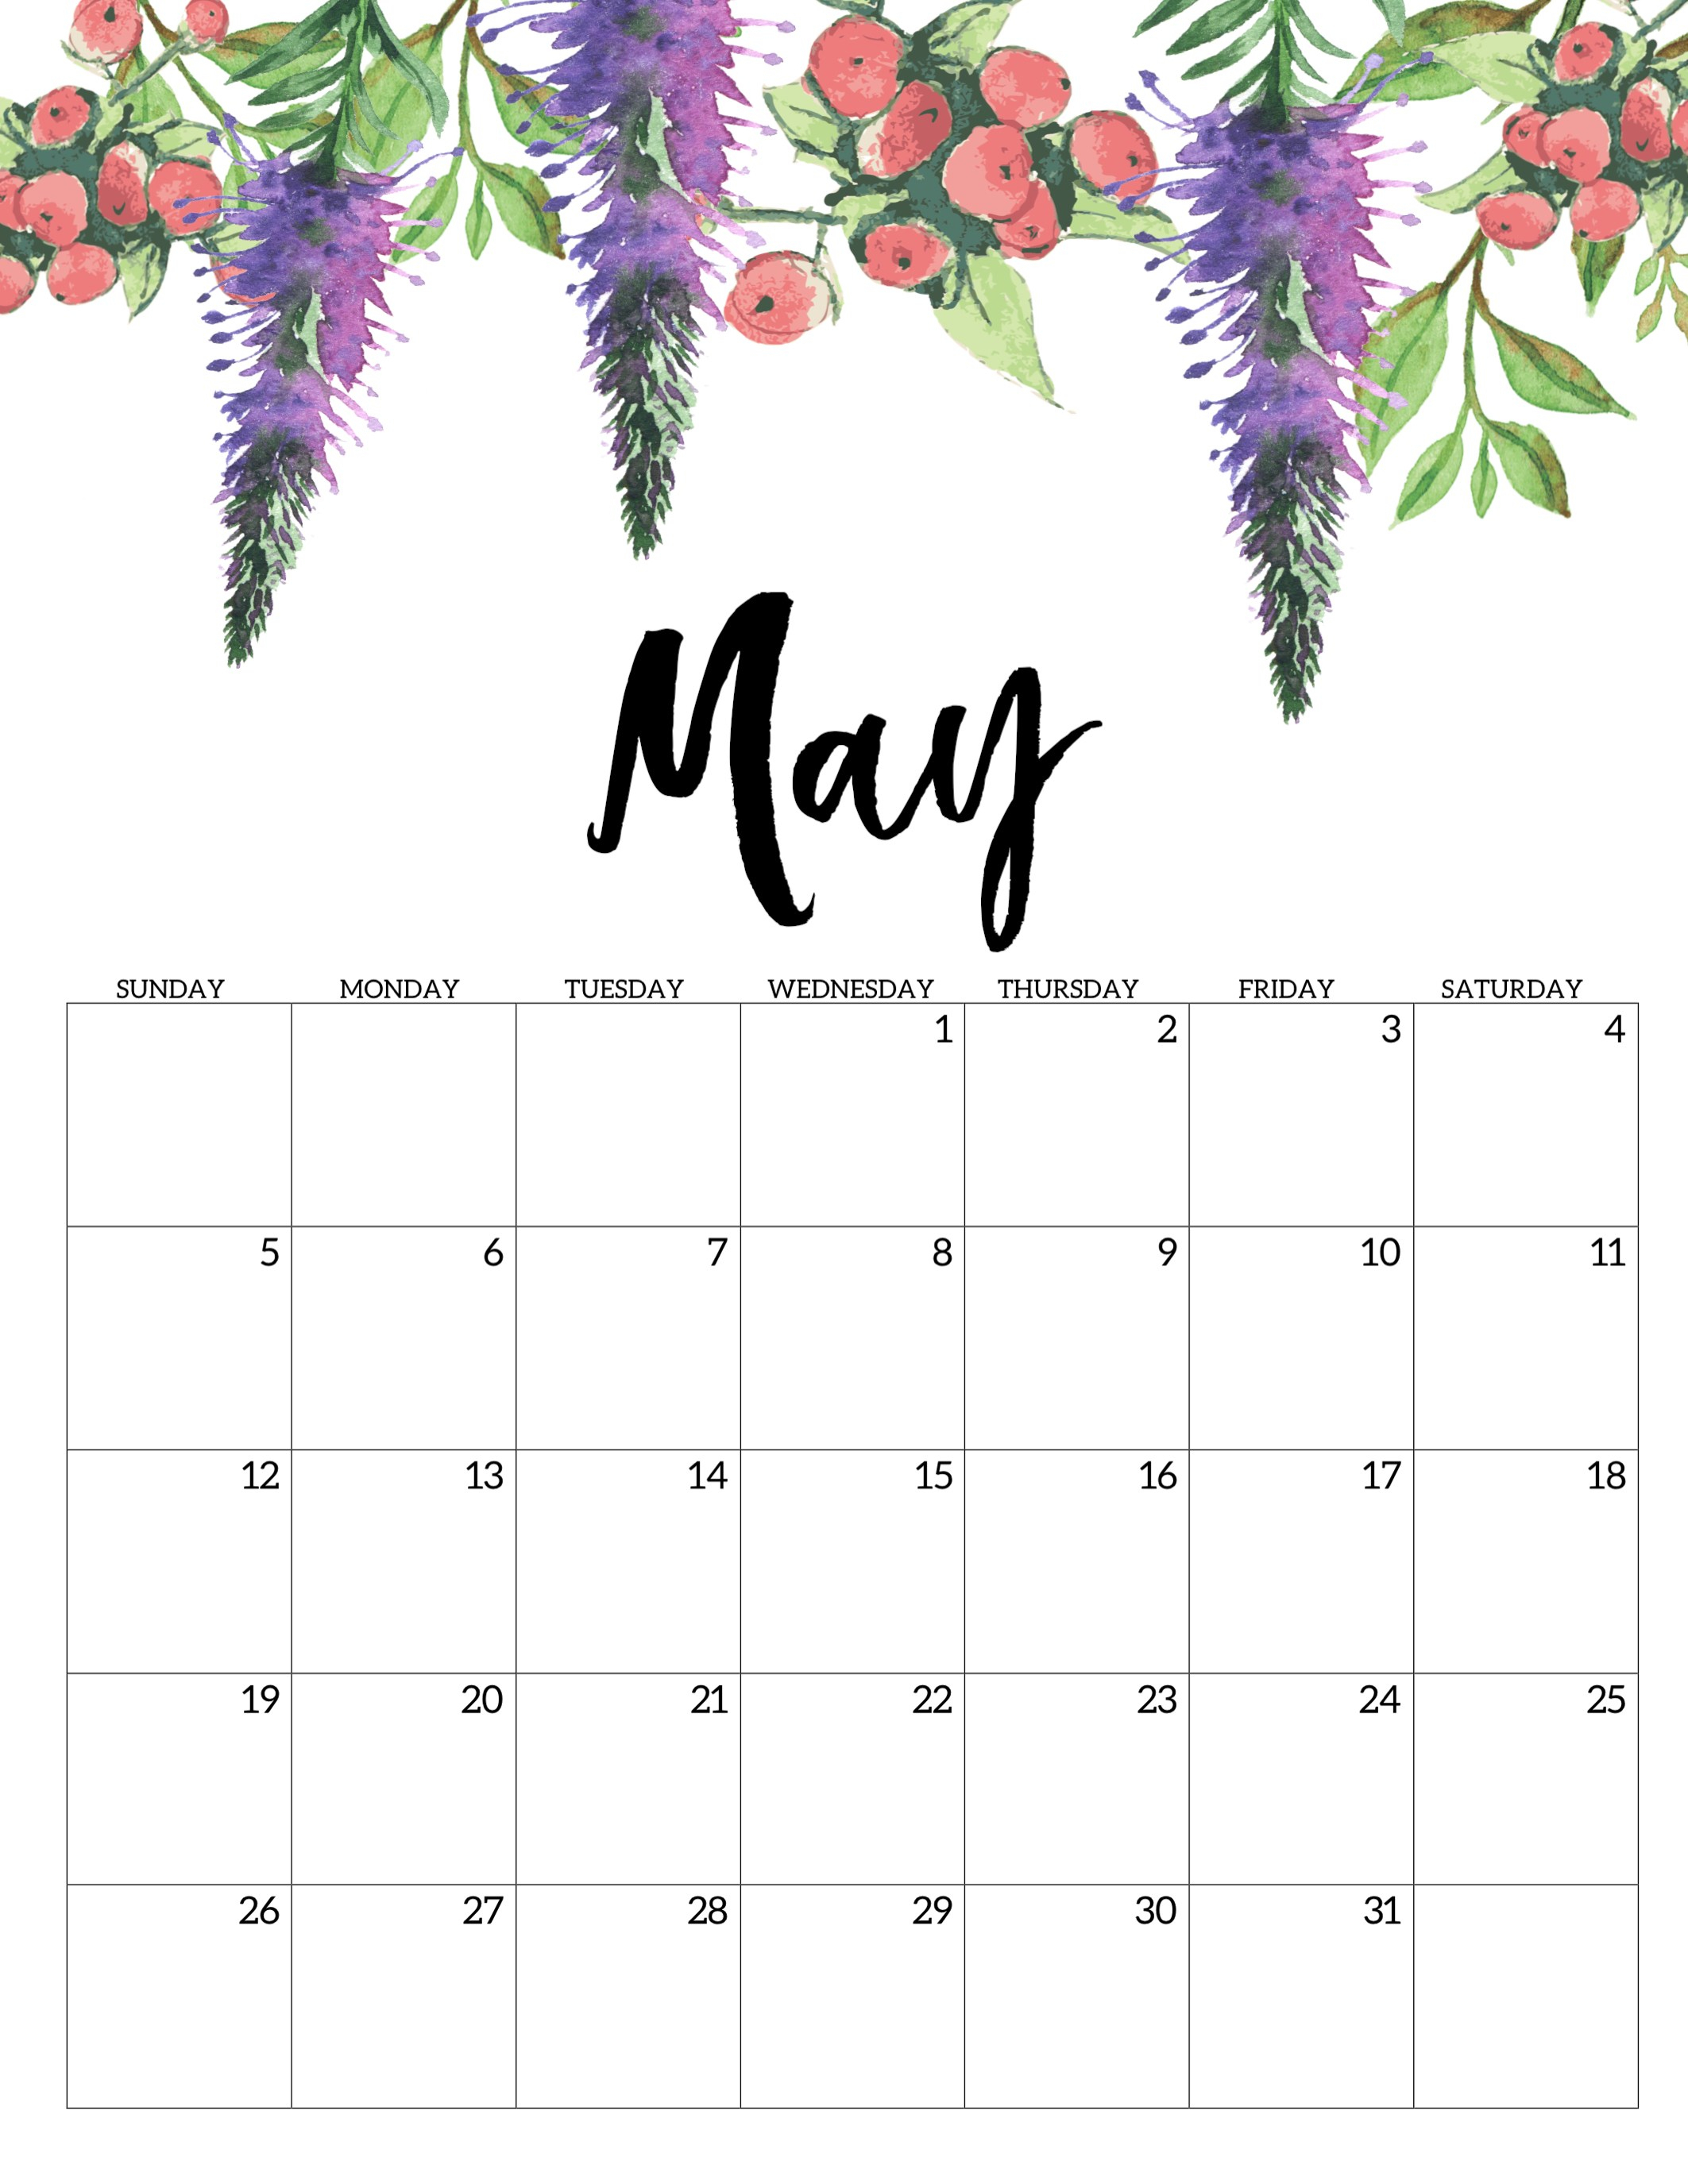 Free Printable Calendar 2019 - Floral - Paper Trail Design regarding Blank Calendar Months For Year 2019-2020 Girly